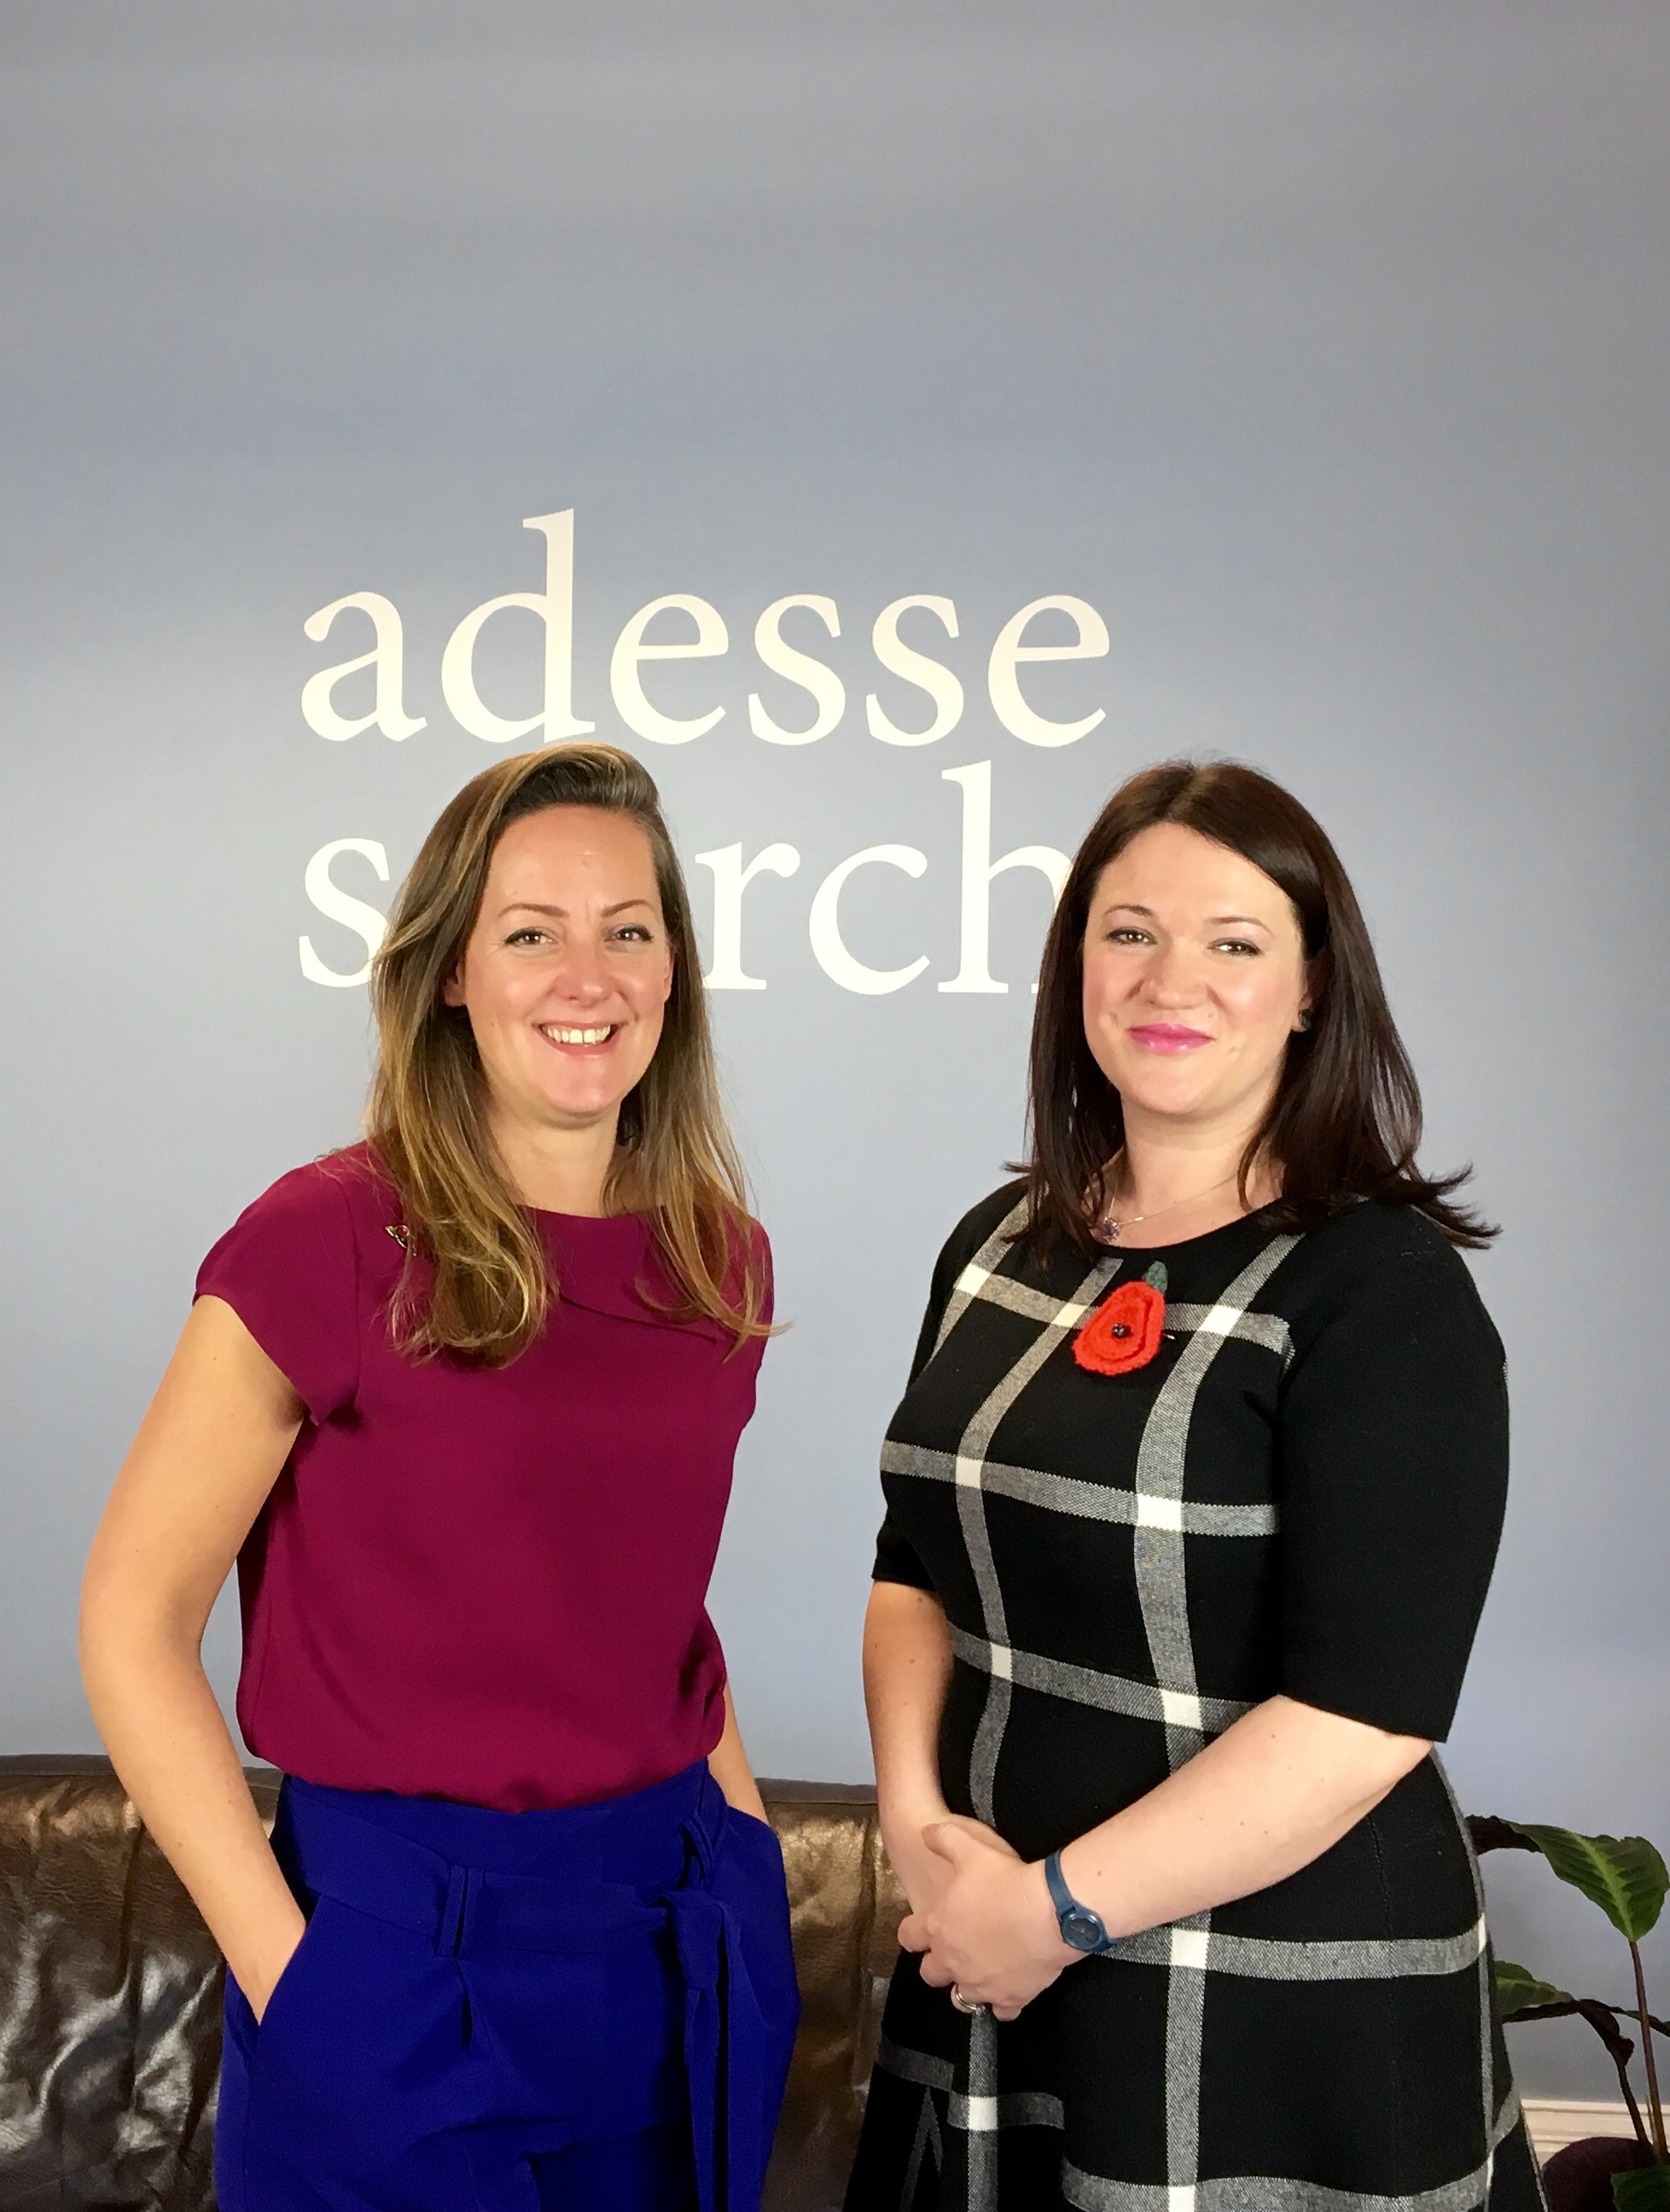 Adesse Director Claire Ackers with Panintelligence CEO & Co-Founder, Zandra Moore